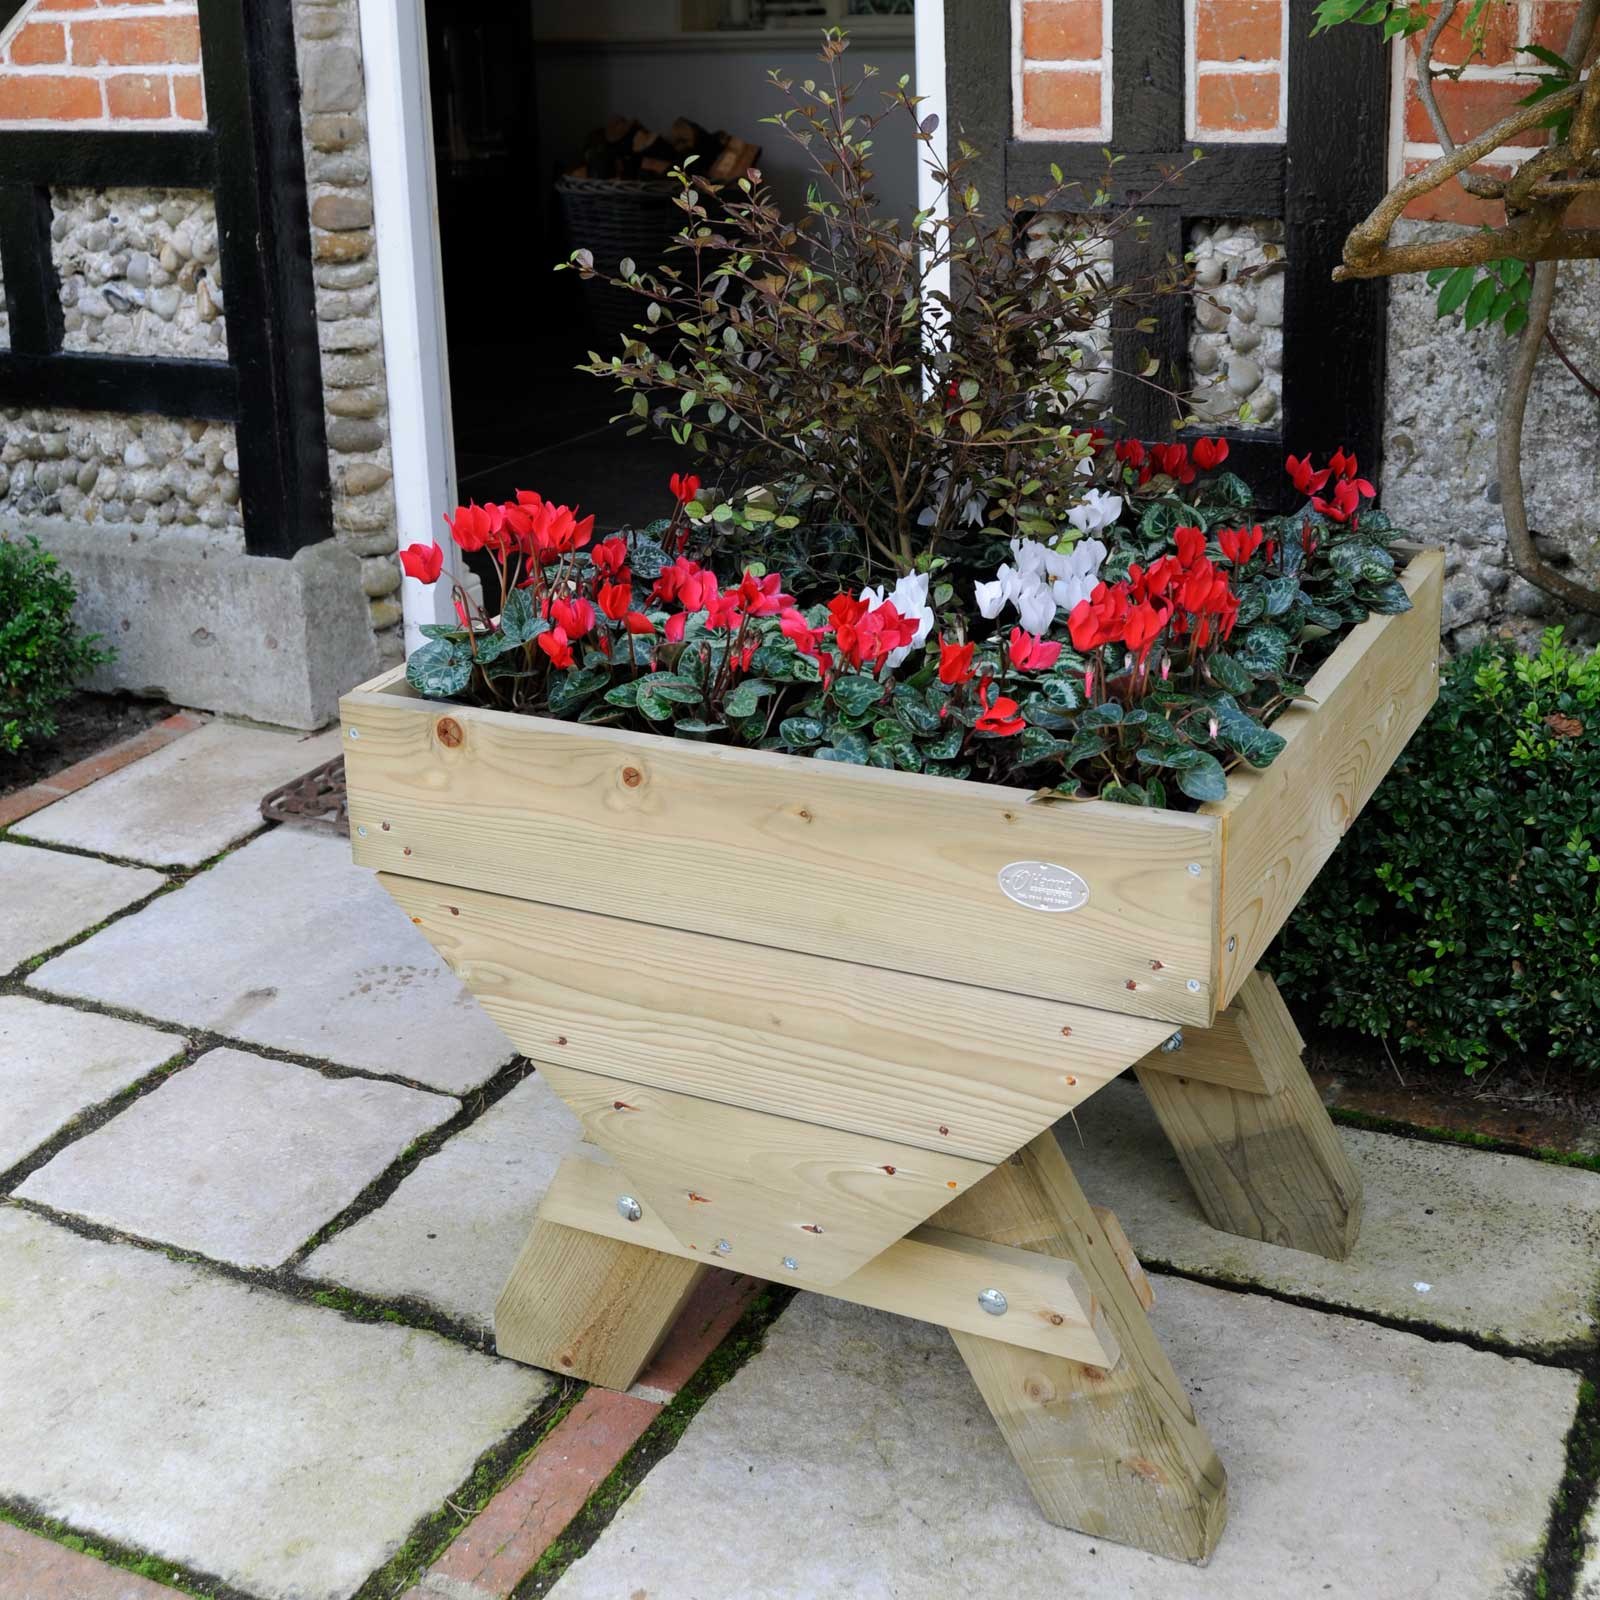 10 Ways To Style Your Very Own Vegetable Garden: Mini Manger Trough Planters